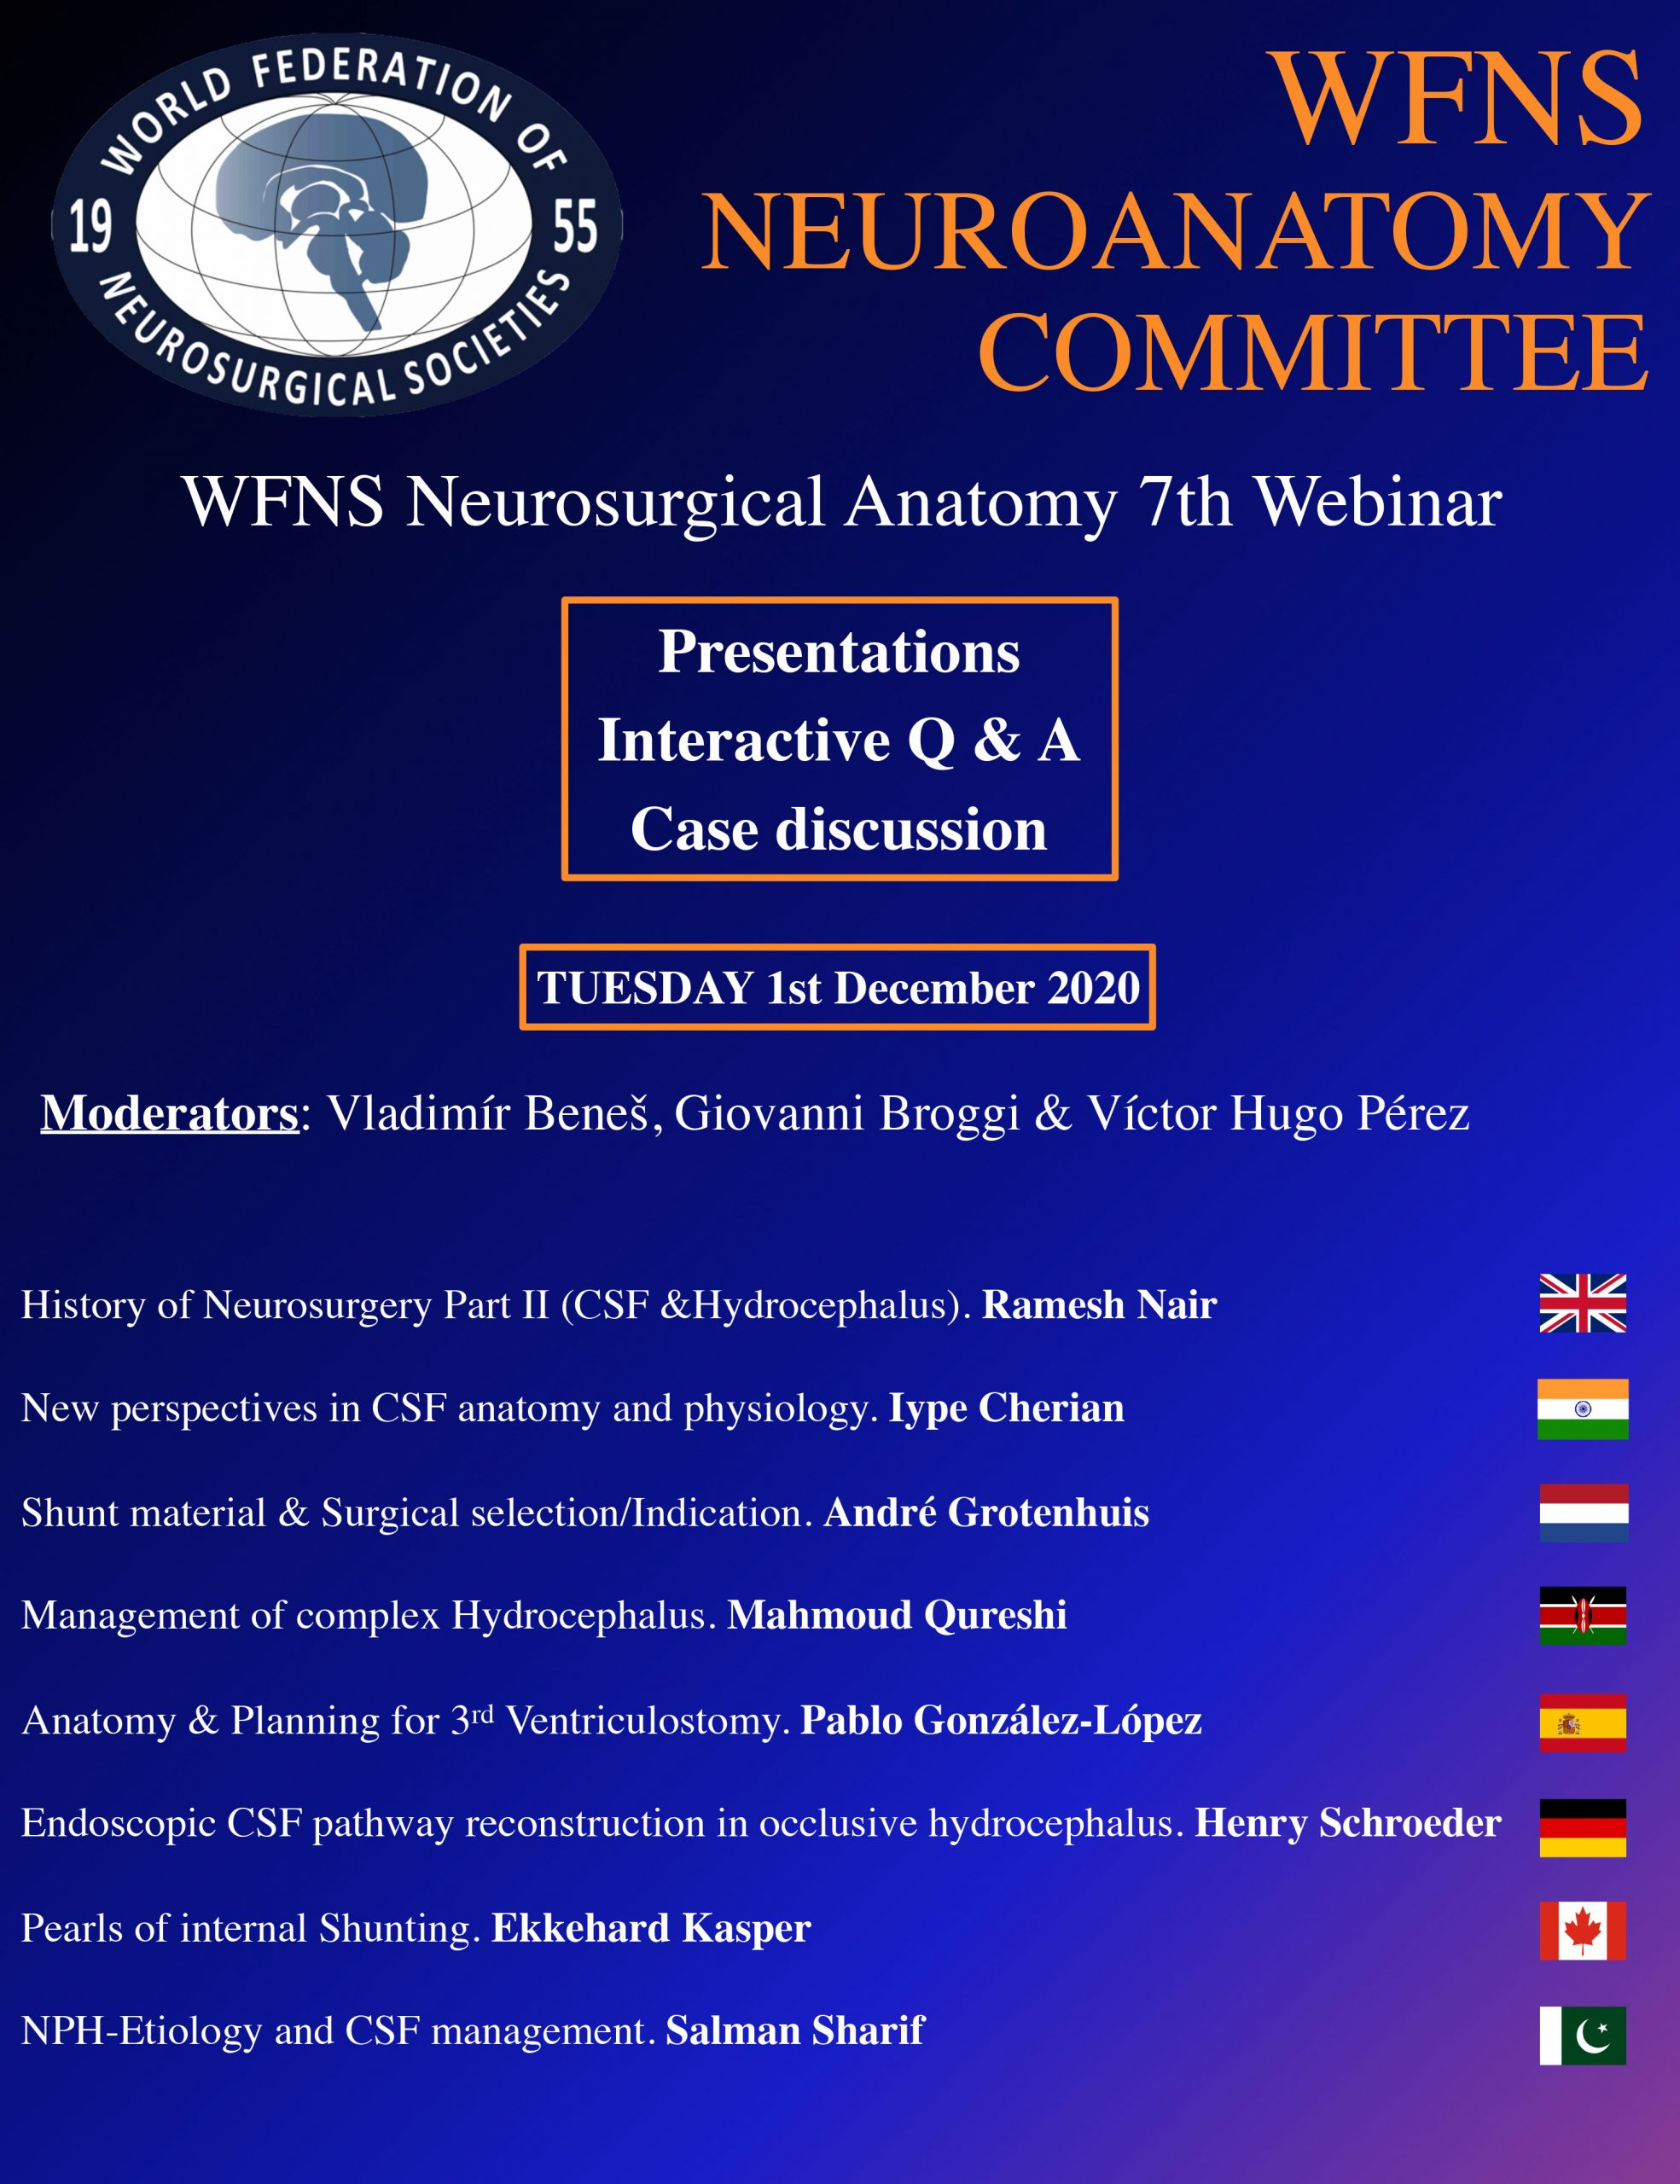 WFNS Neuroanatomy Series Continues, Tuesday Dec 1, and Dec 2